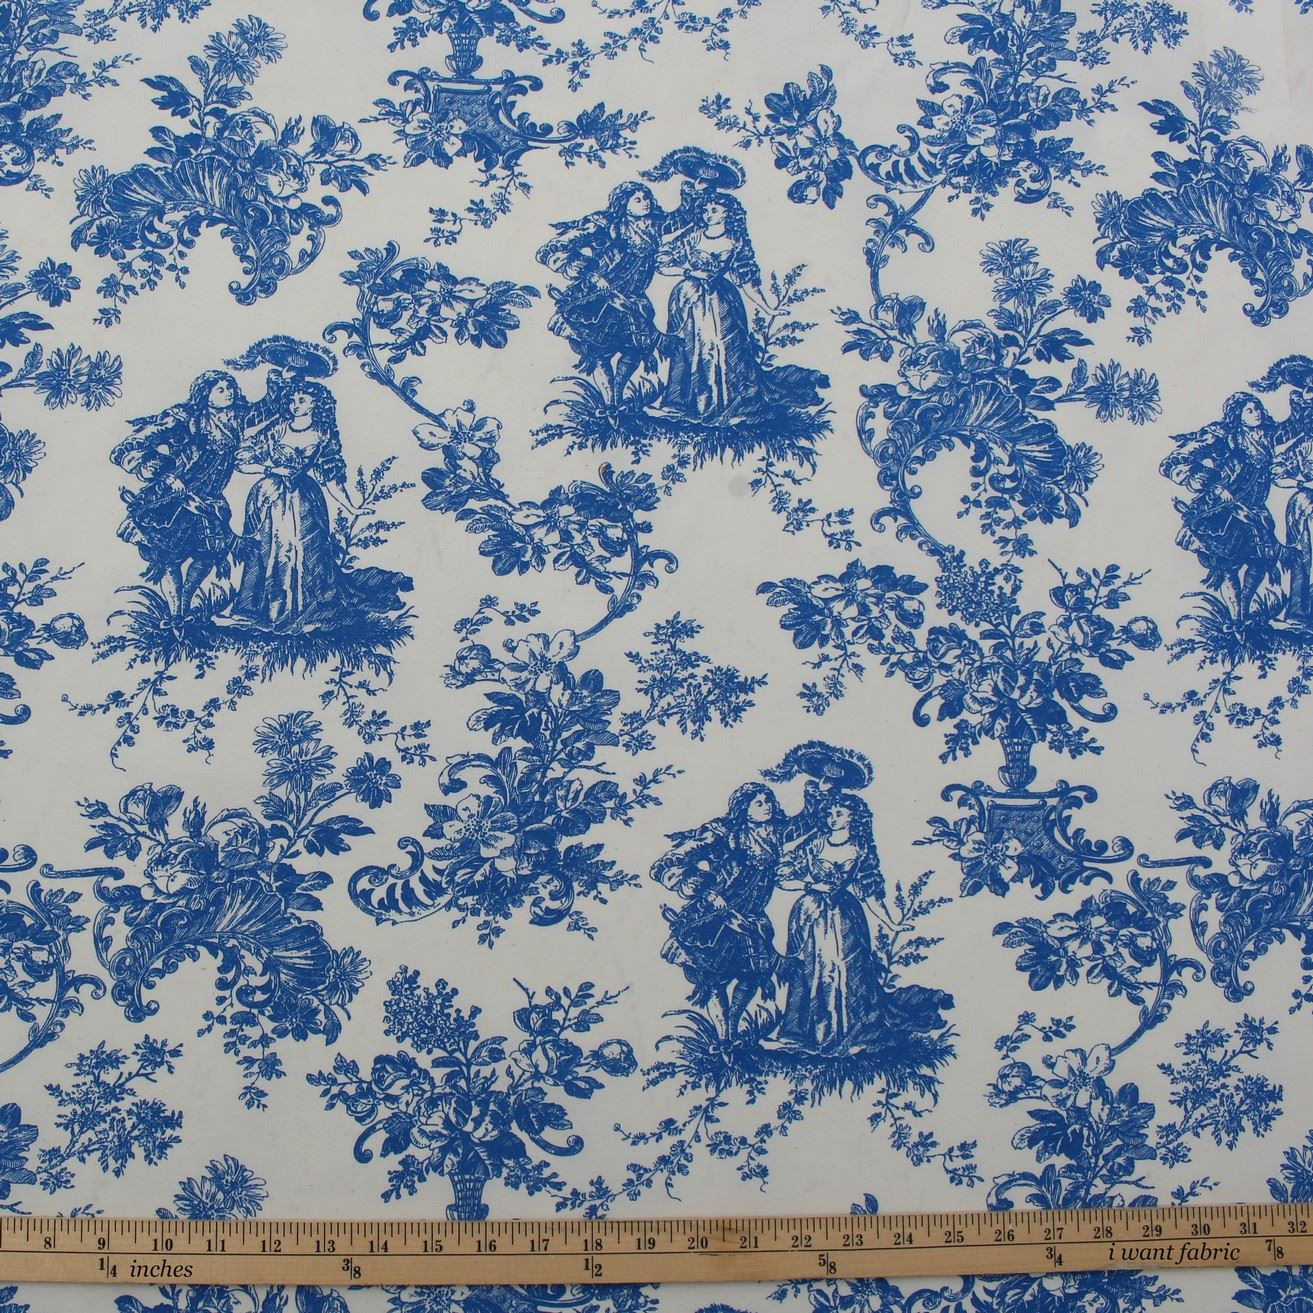 toile de jouy french scene print cotton satin muslin curtain upholstery fabric ebay. Black Bedroom Furniture Sets. Home Design Ideas